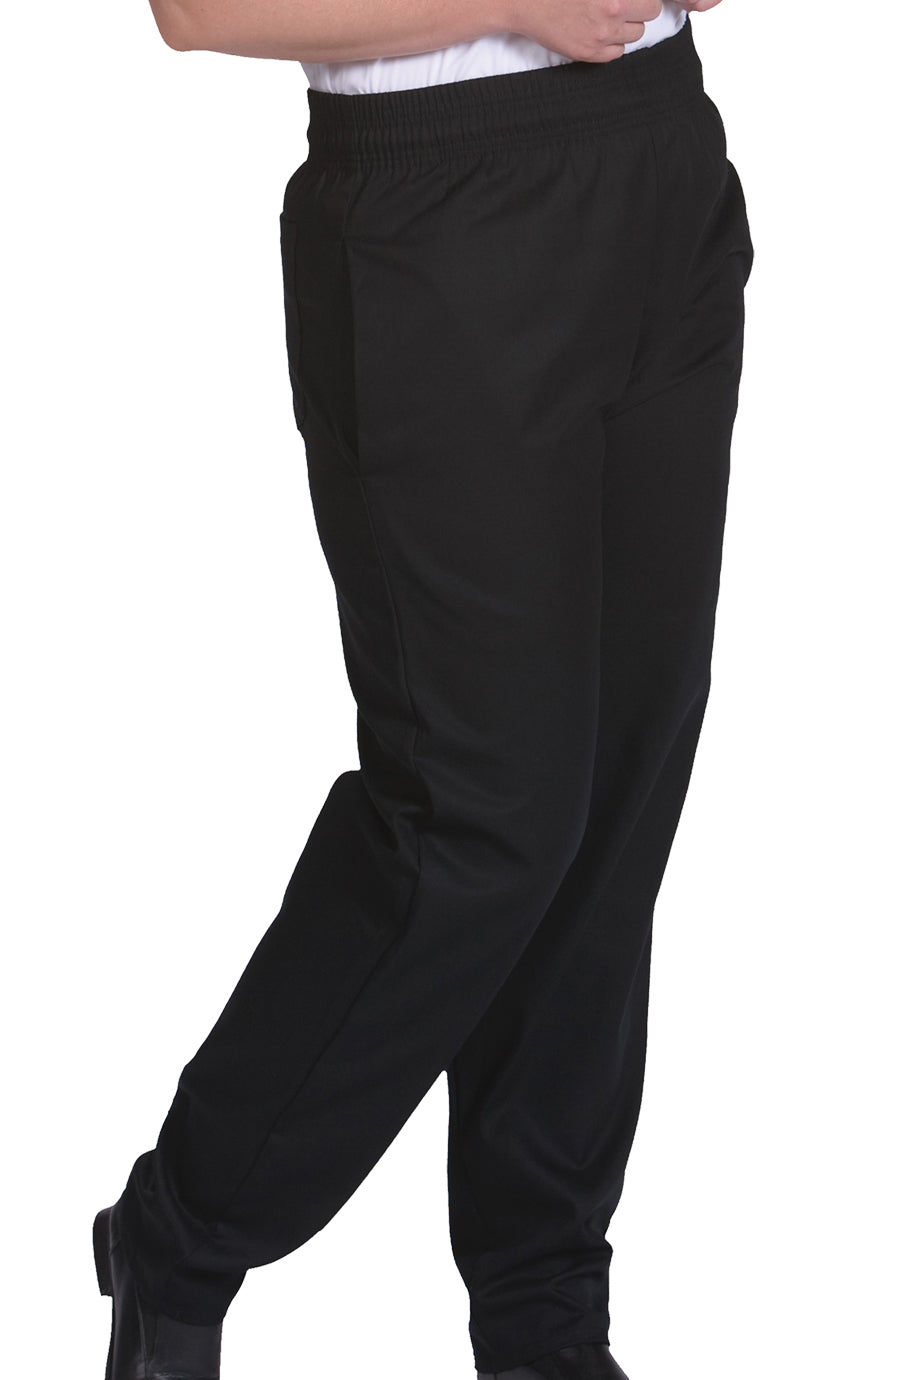 Edwards Basic Chef Pant